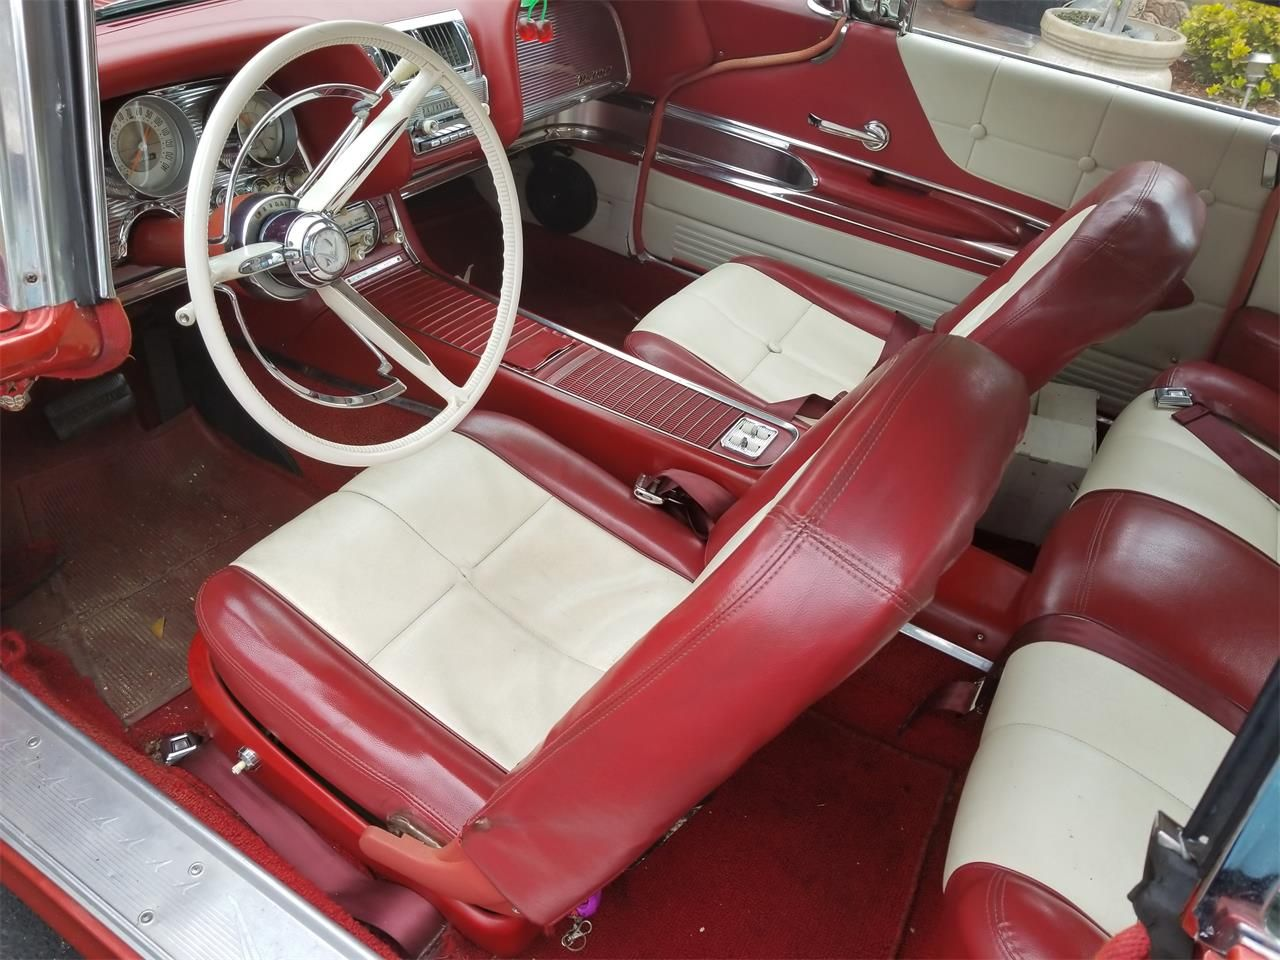 1960 Thunderbird Interior 2 Tone Vinyl With A C Power Brakes Power Windows Kick Panel Speakers Are Aftermarket Add Ons In 2020 Thunderbird Ford Thunderbird Ford